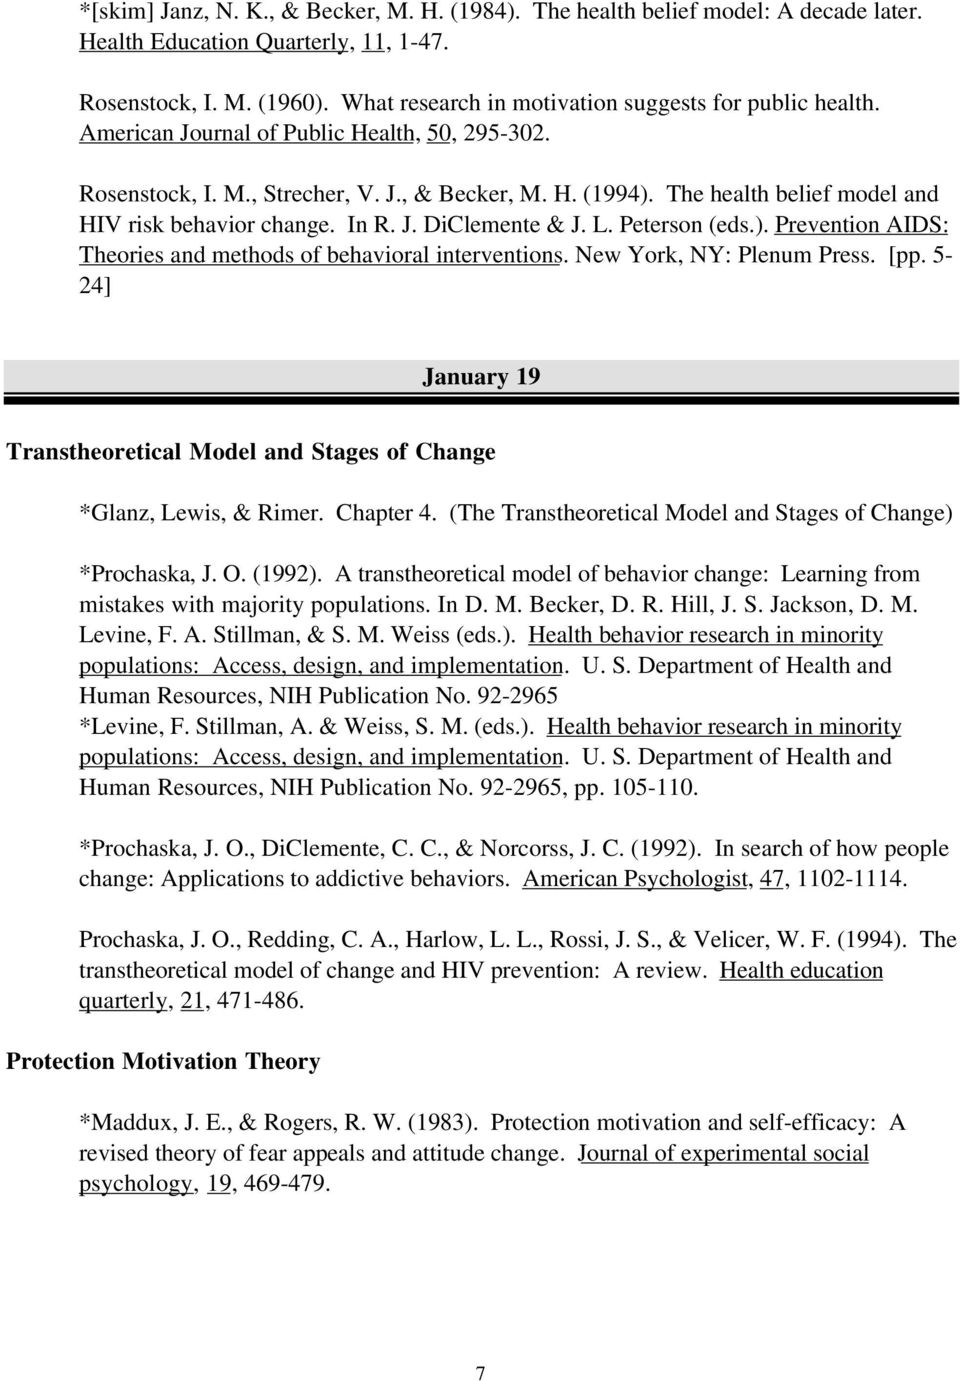 The health belief model and HIV risk behavior change. In R. J. DiClemente & J. L. Peterson (eds.). Prevention AIDS: Theories and methods of behavioral interventions. New York, NY: Plenum Press. [pp.